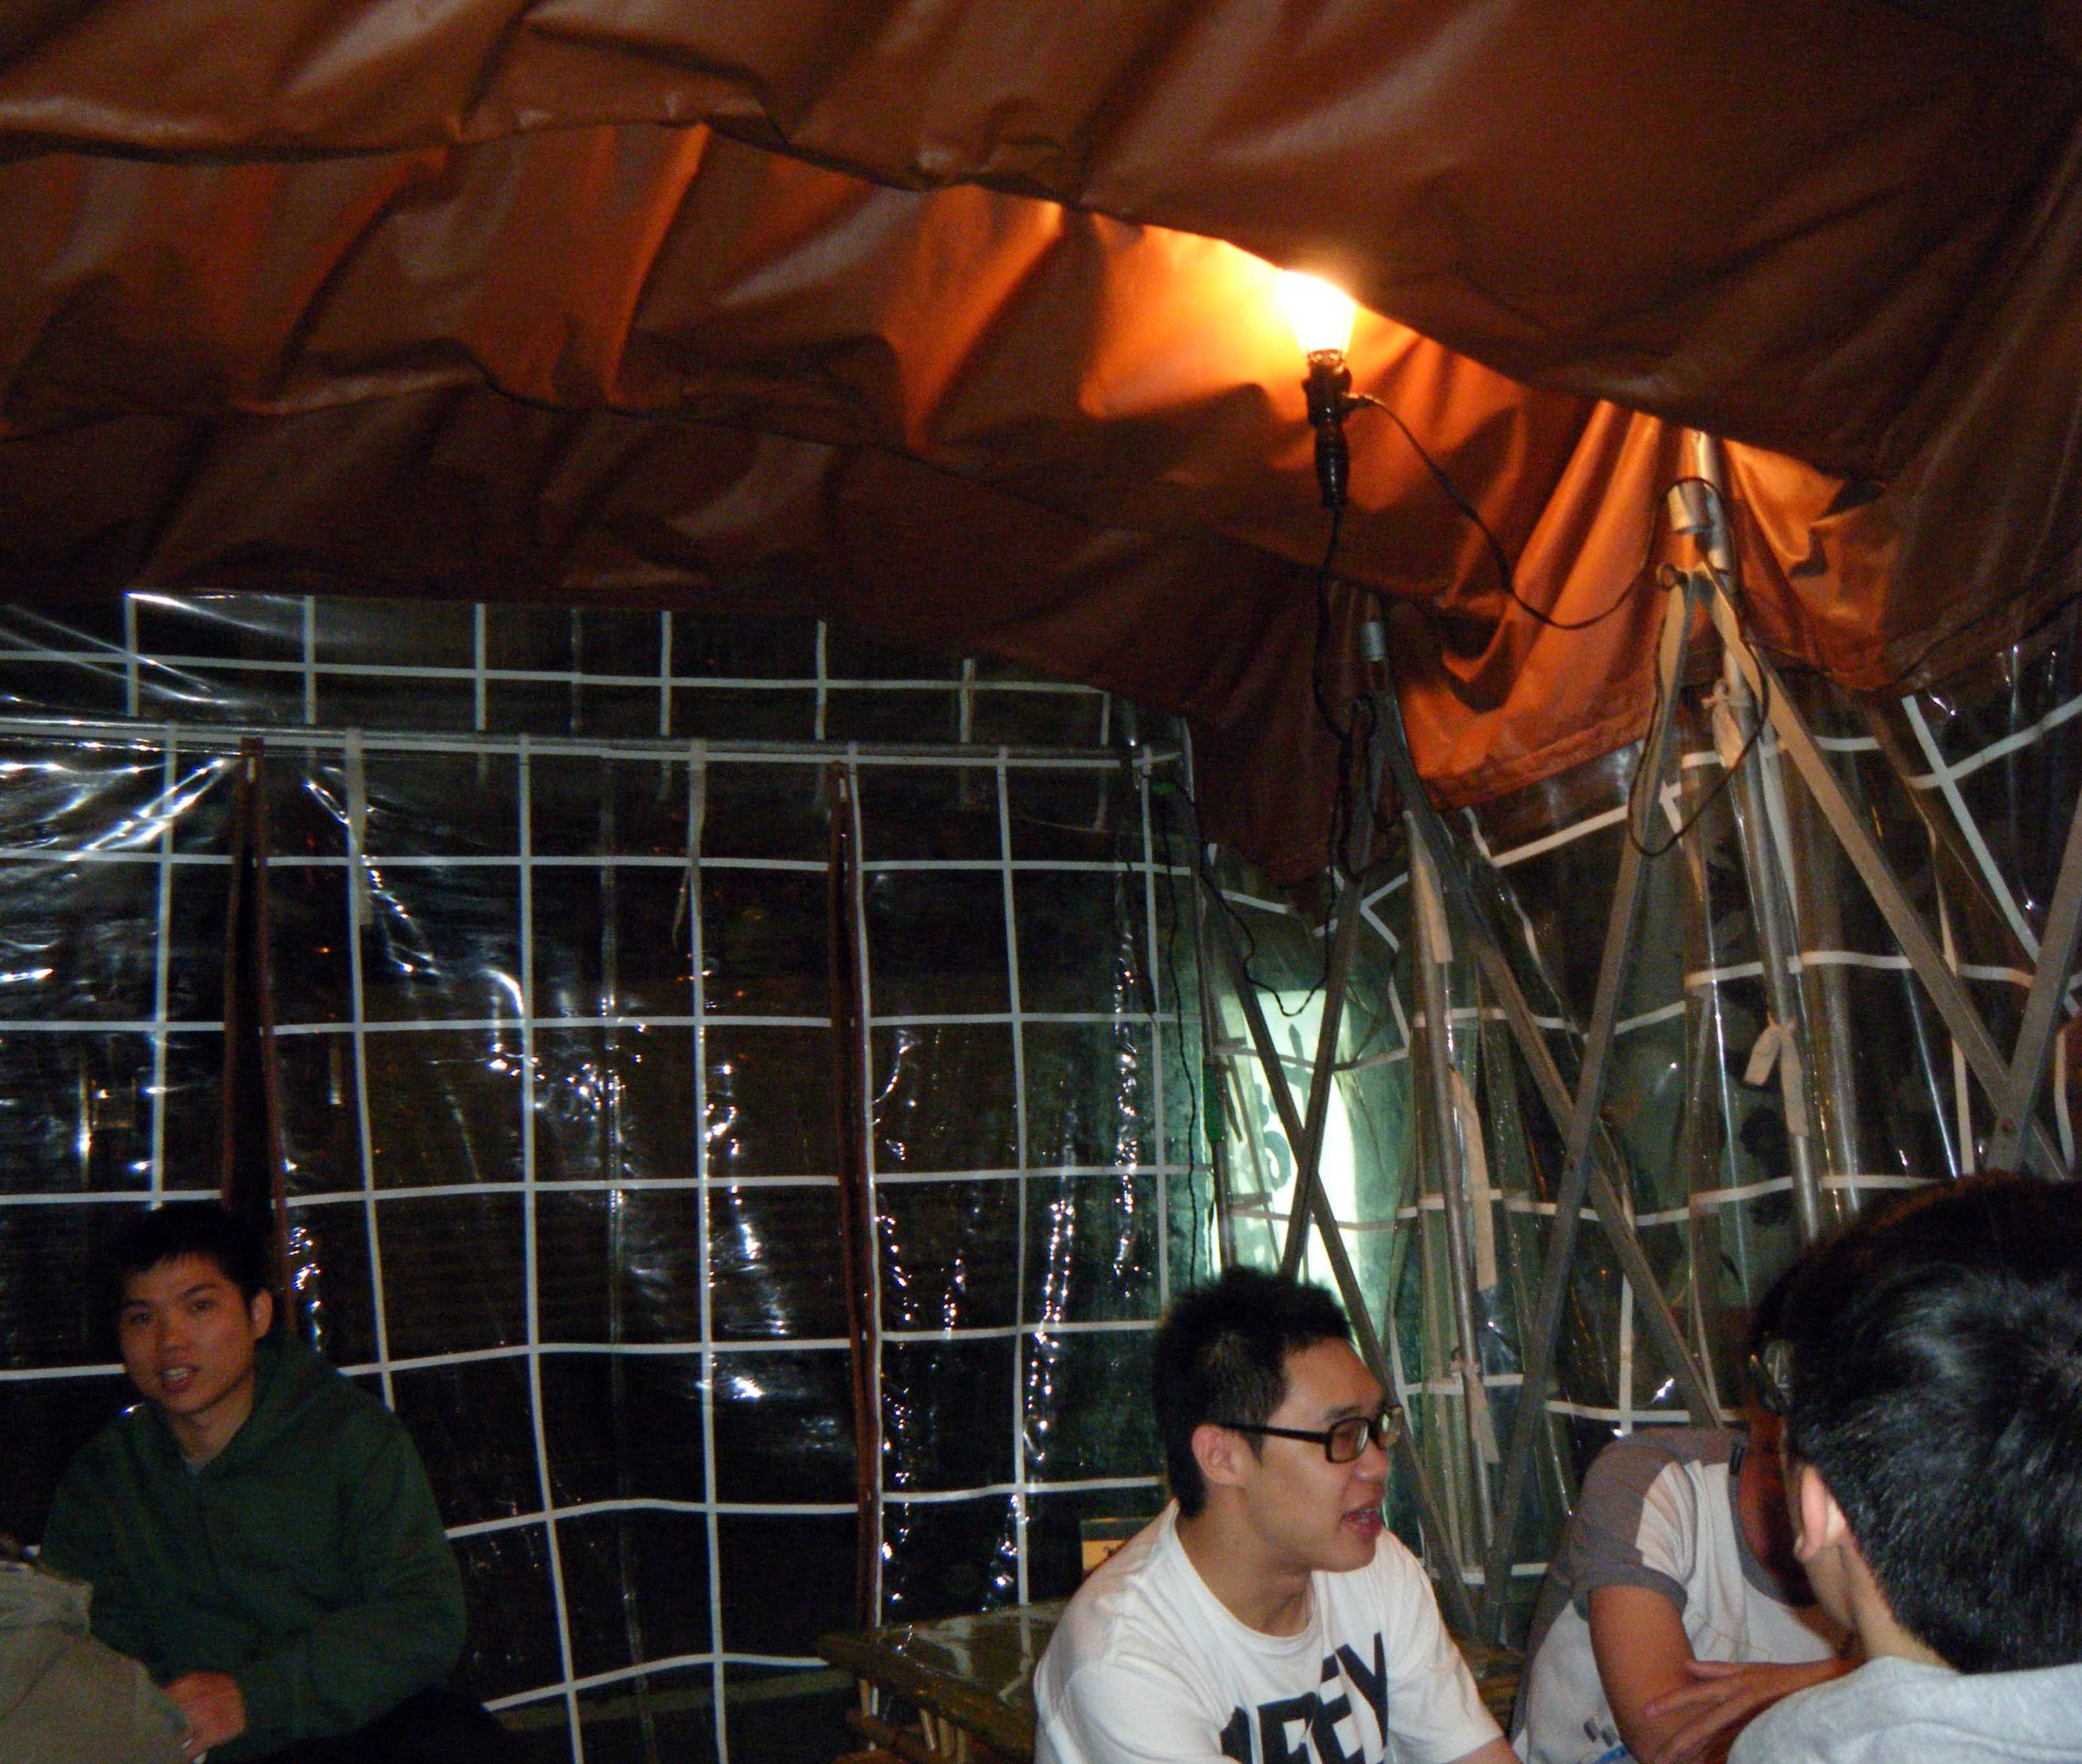 Tainan party tent 10-28-10.jpg